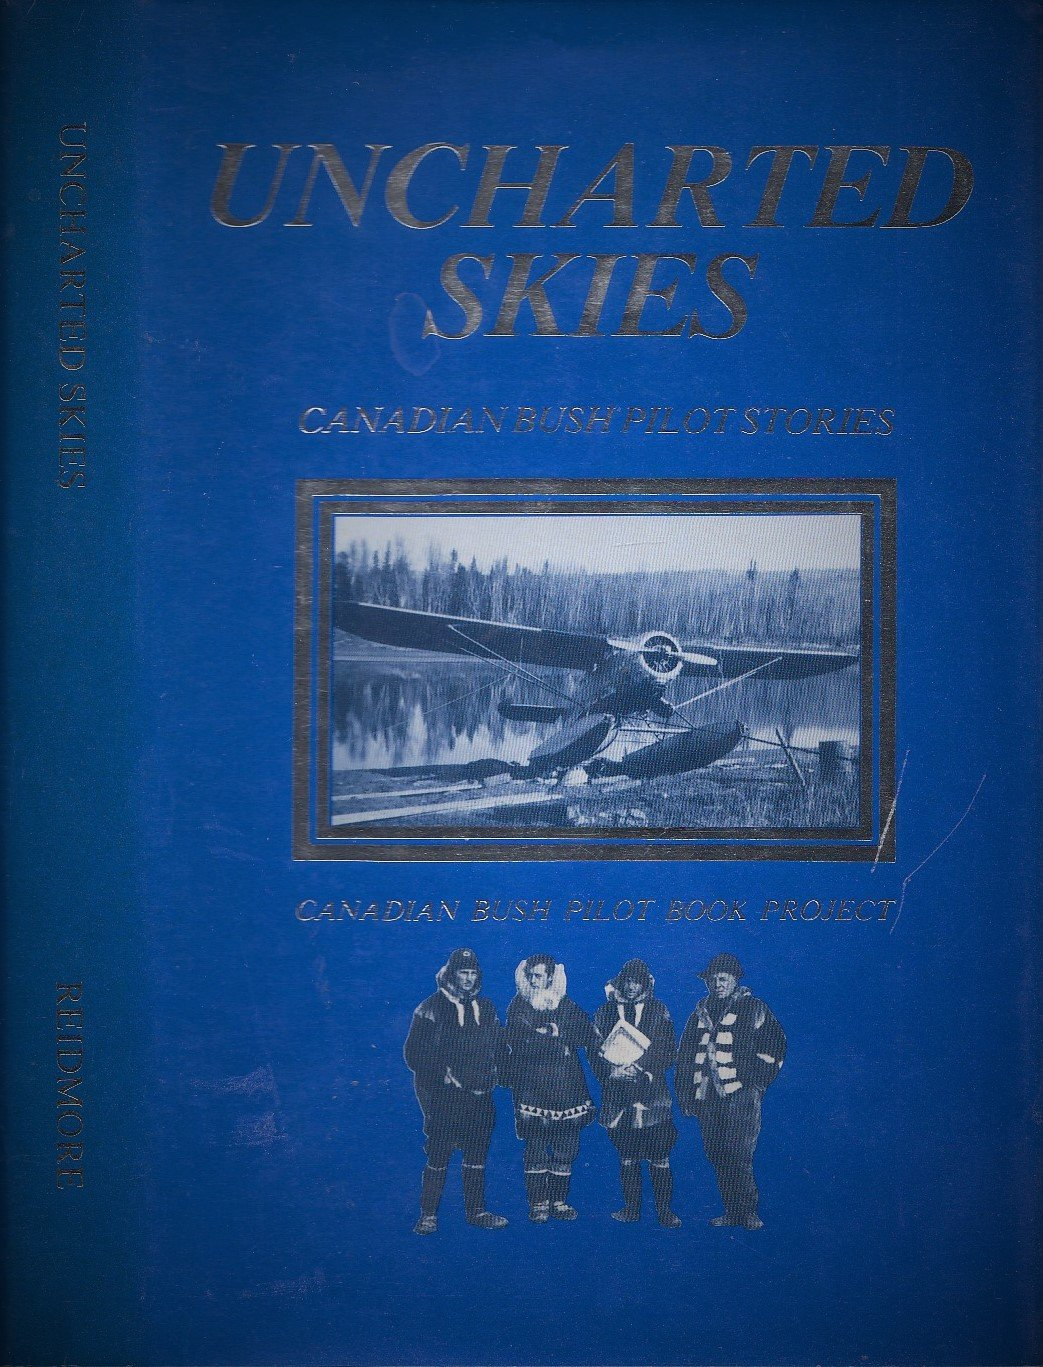 Uncharted skies: Canadian bush pilot stories, HENRY, Walter - Editor